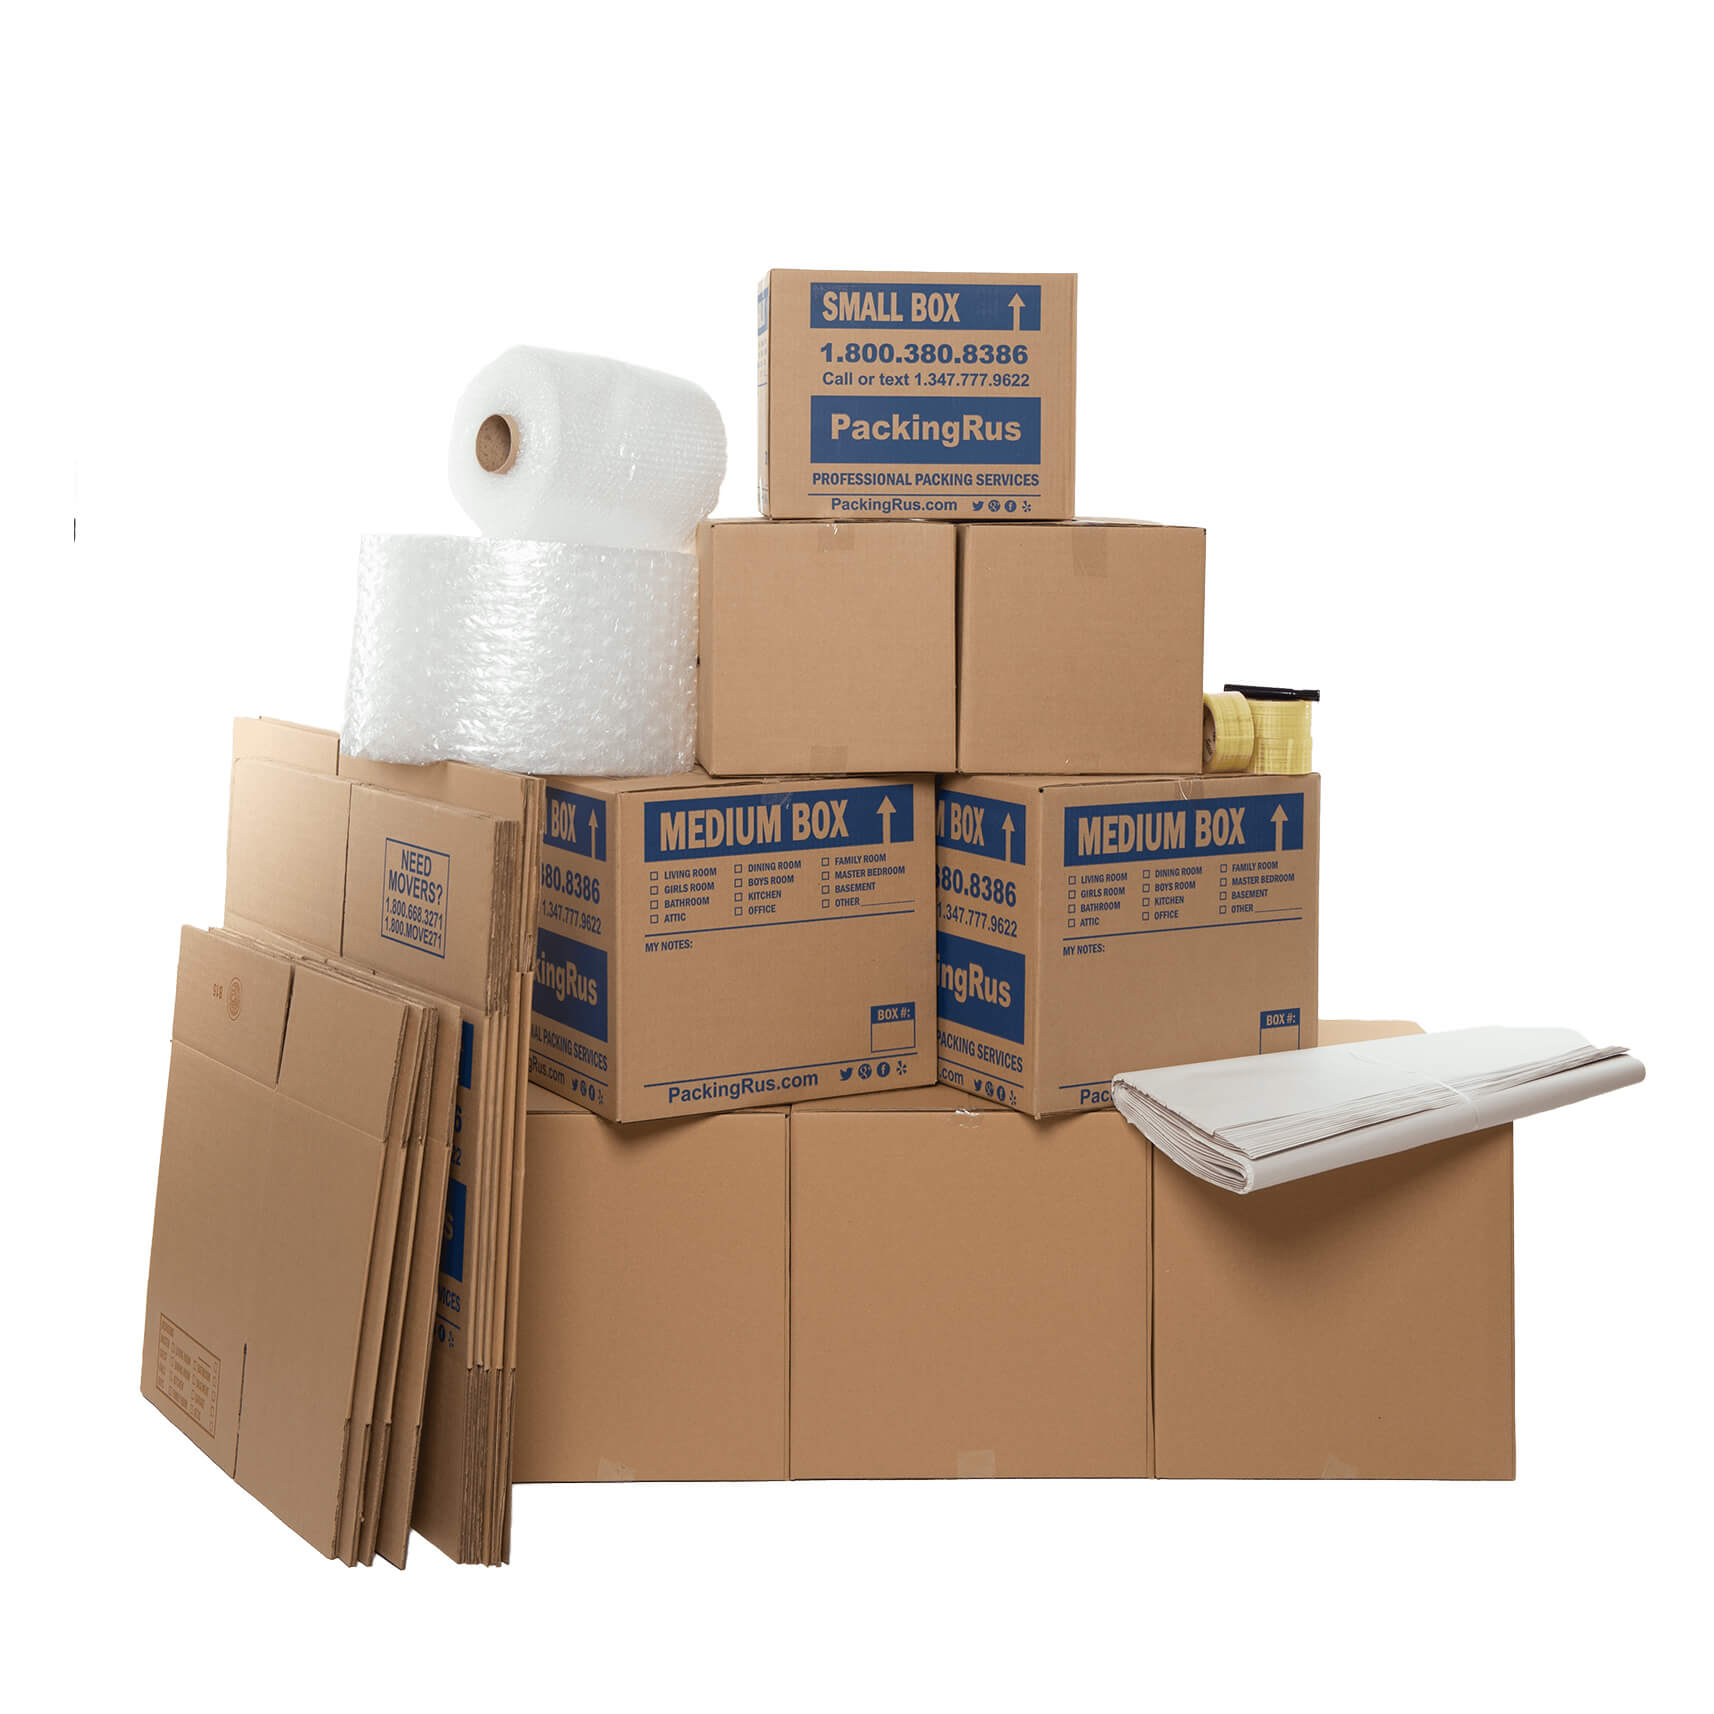 Mid Size Business Office Moving Kit Packing R Us Moving Packing Shipping Storing